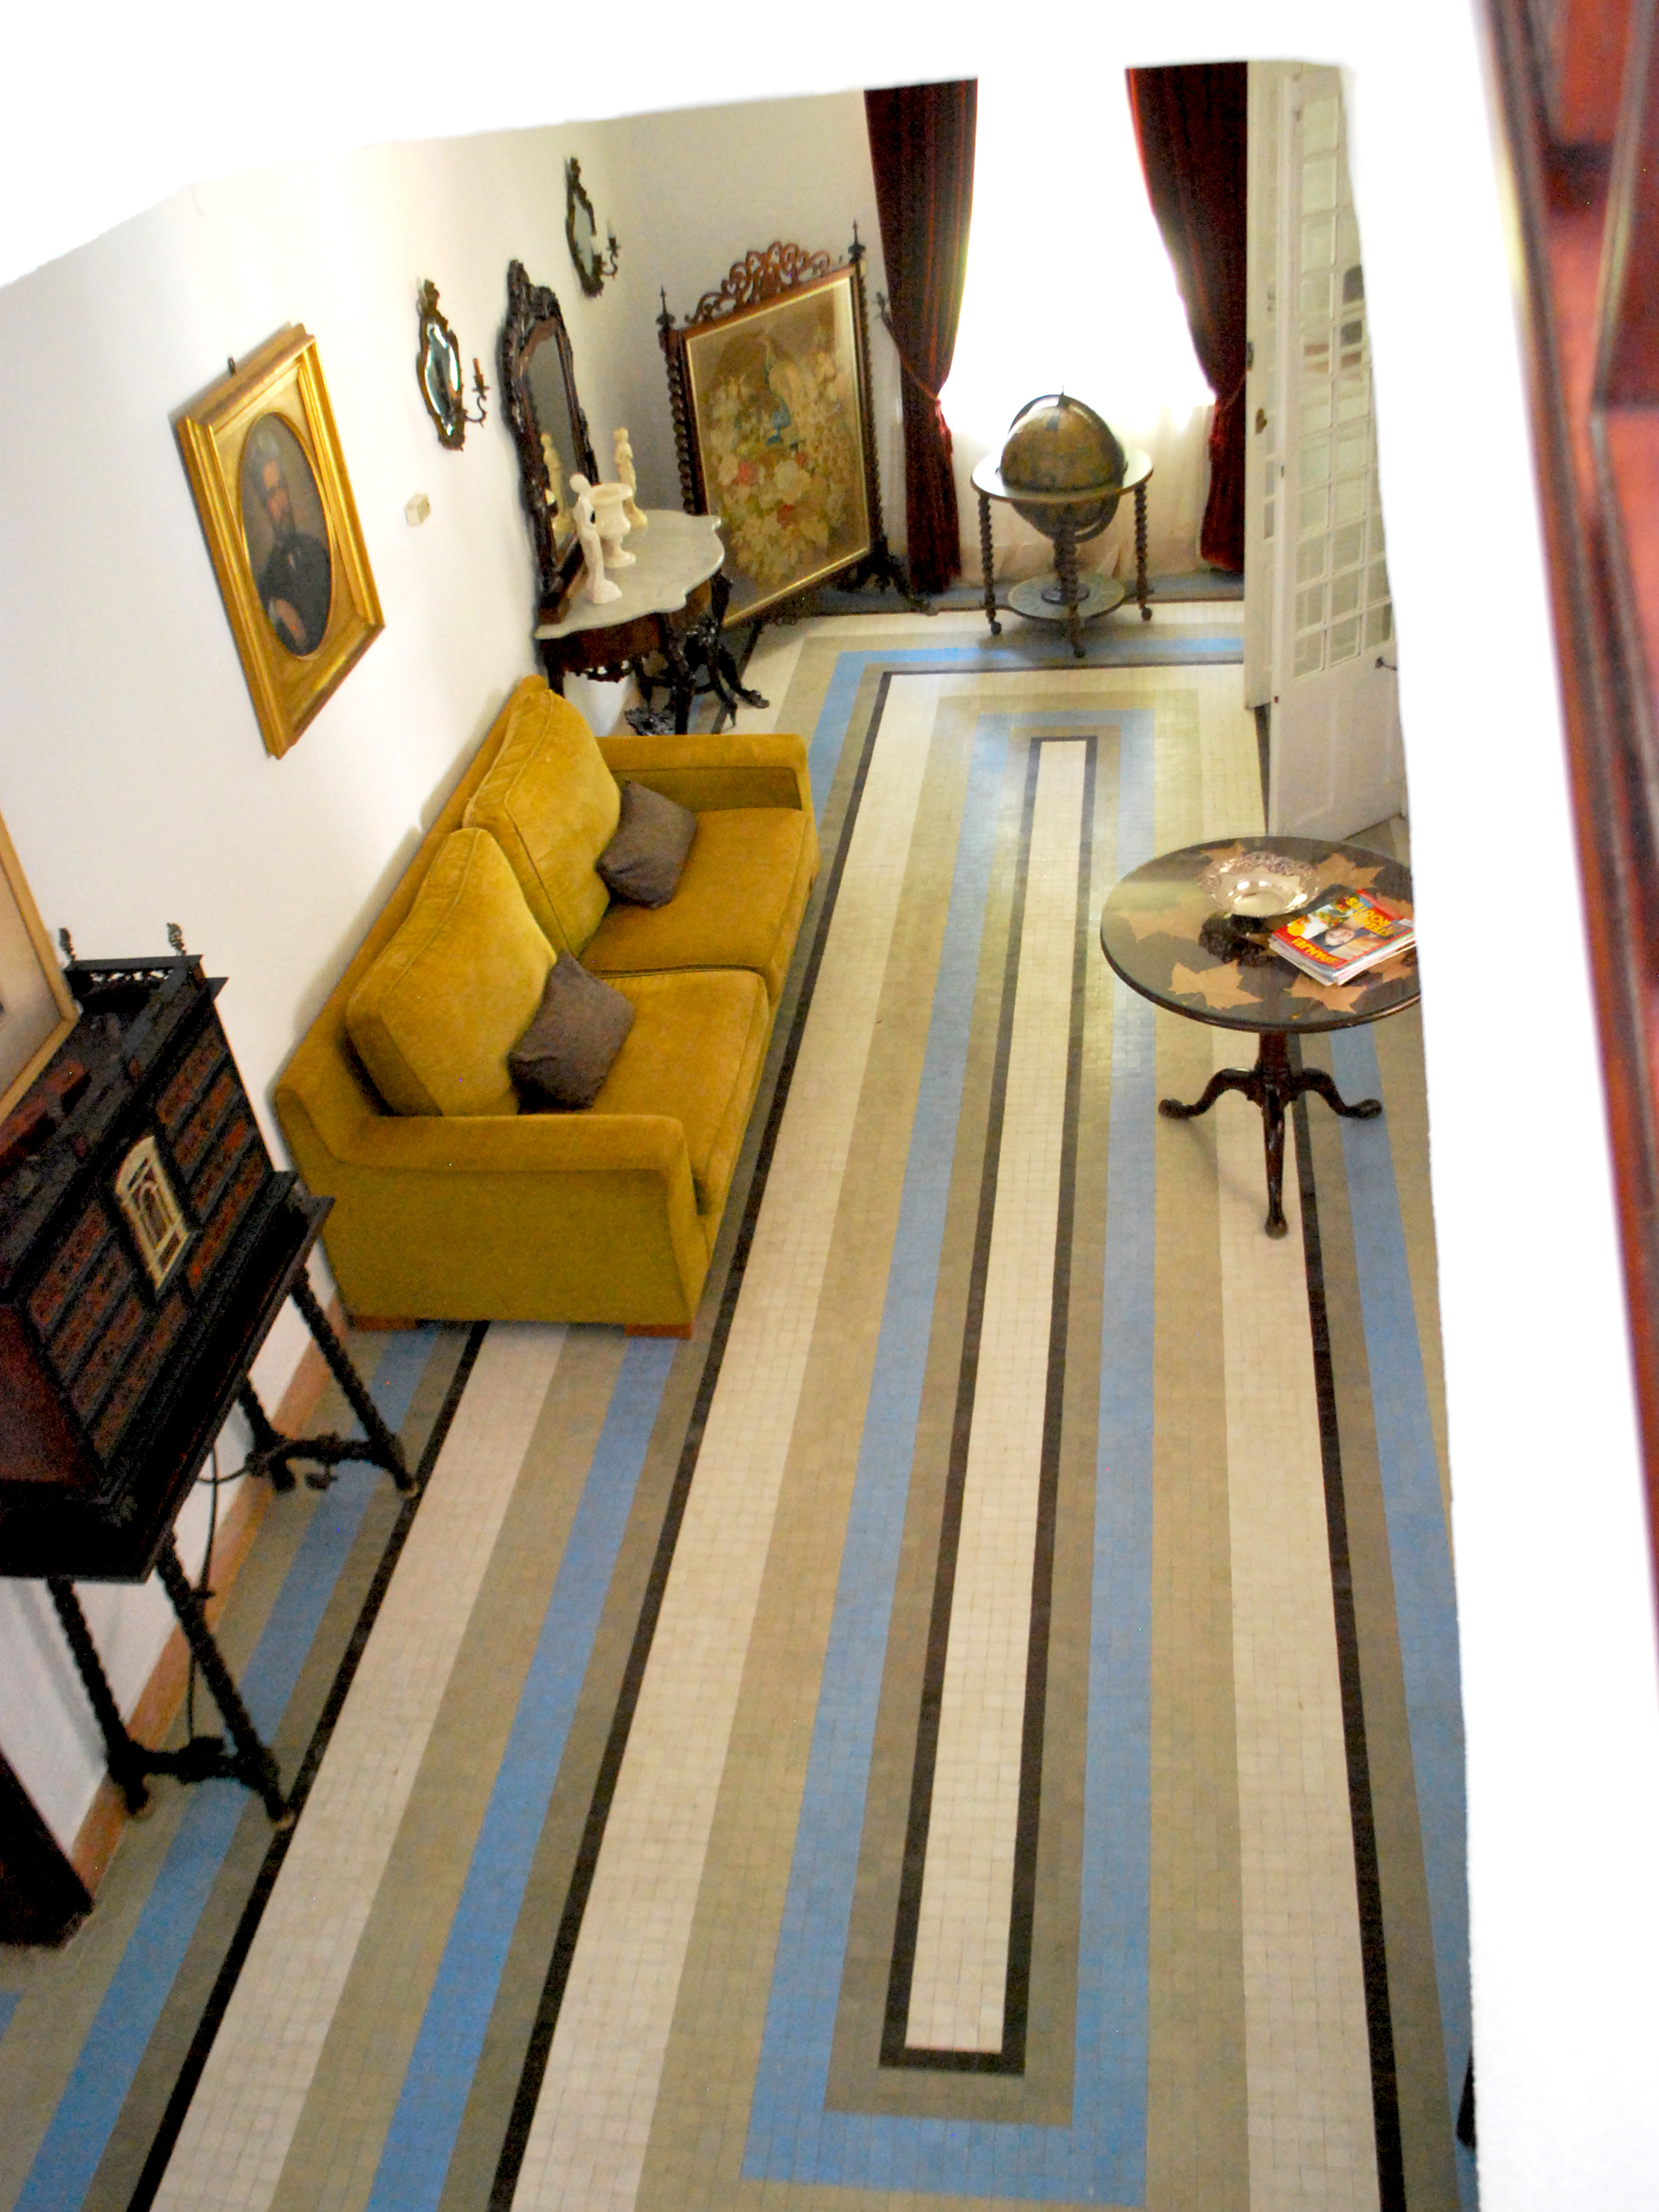 The lobby has this striking rectangular design in blue and browns.